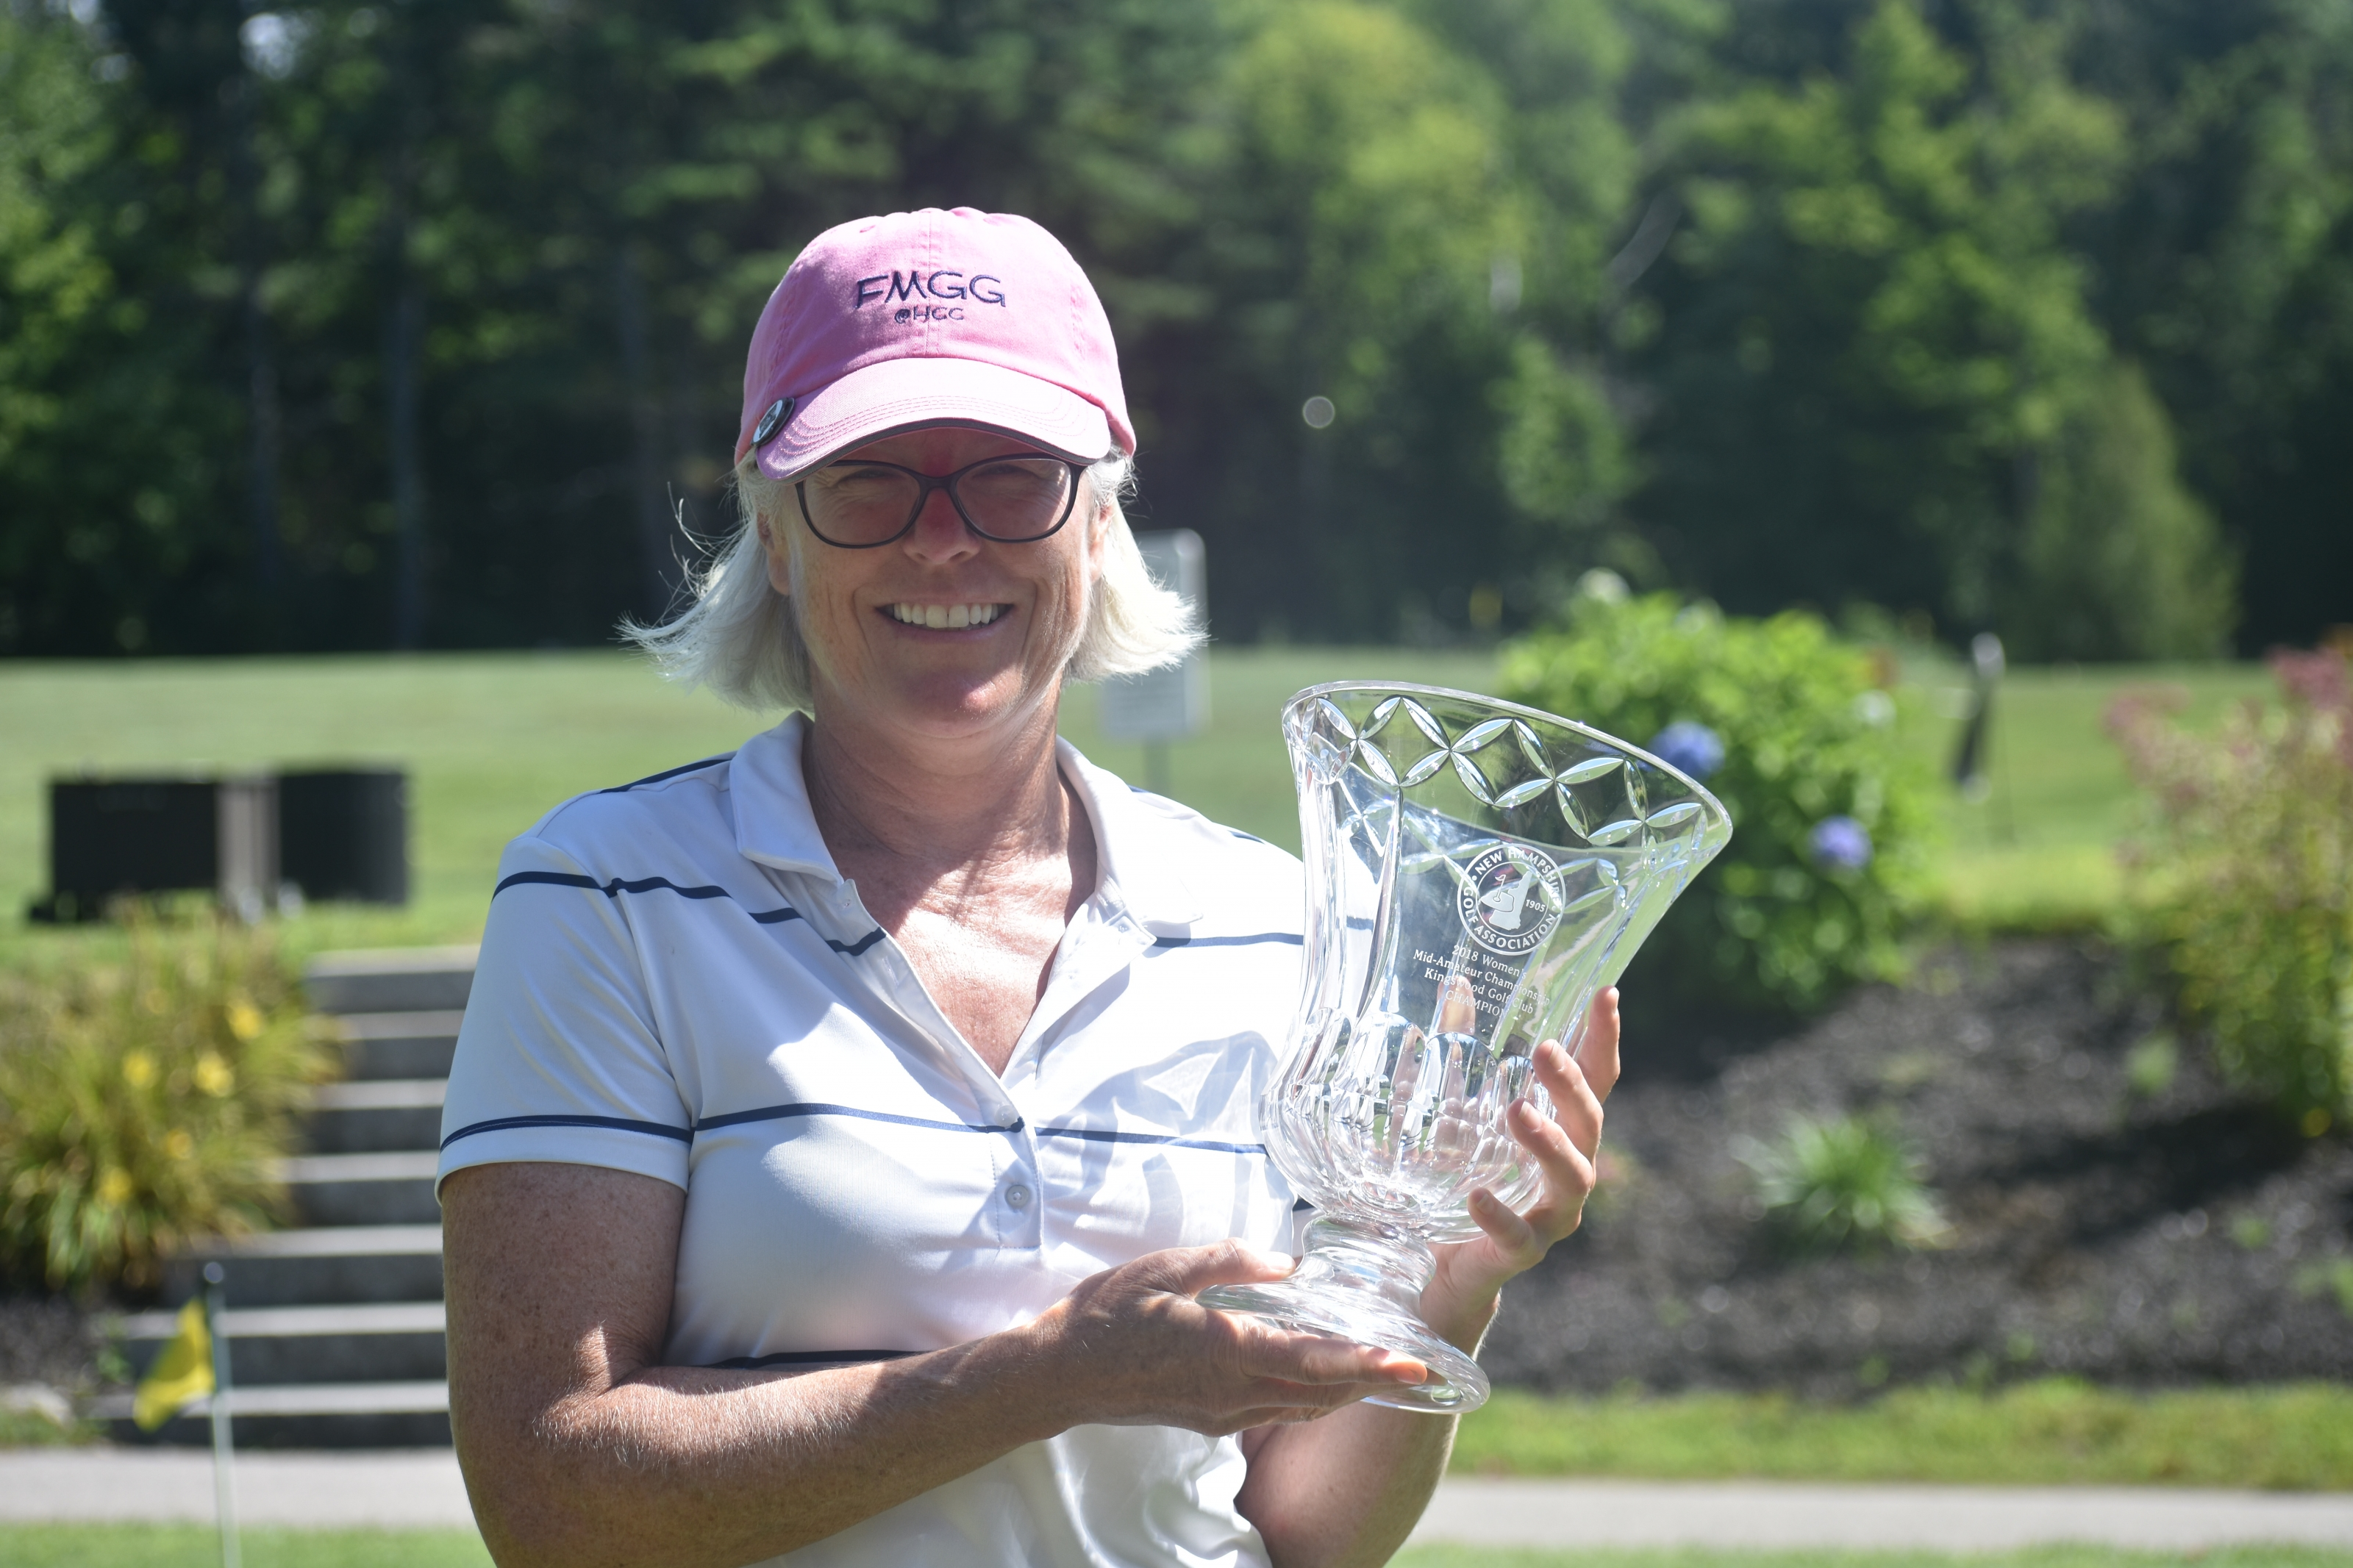 Peters Perseveres and Claims Inaugural Women's Mid-Amateur Title